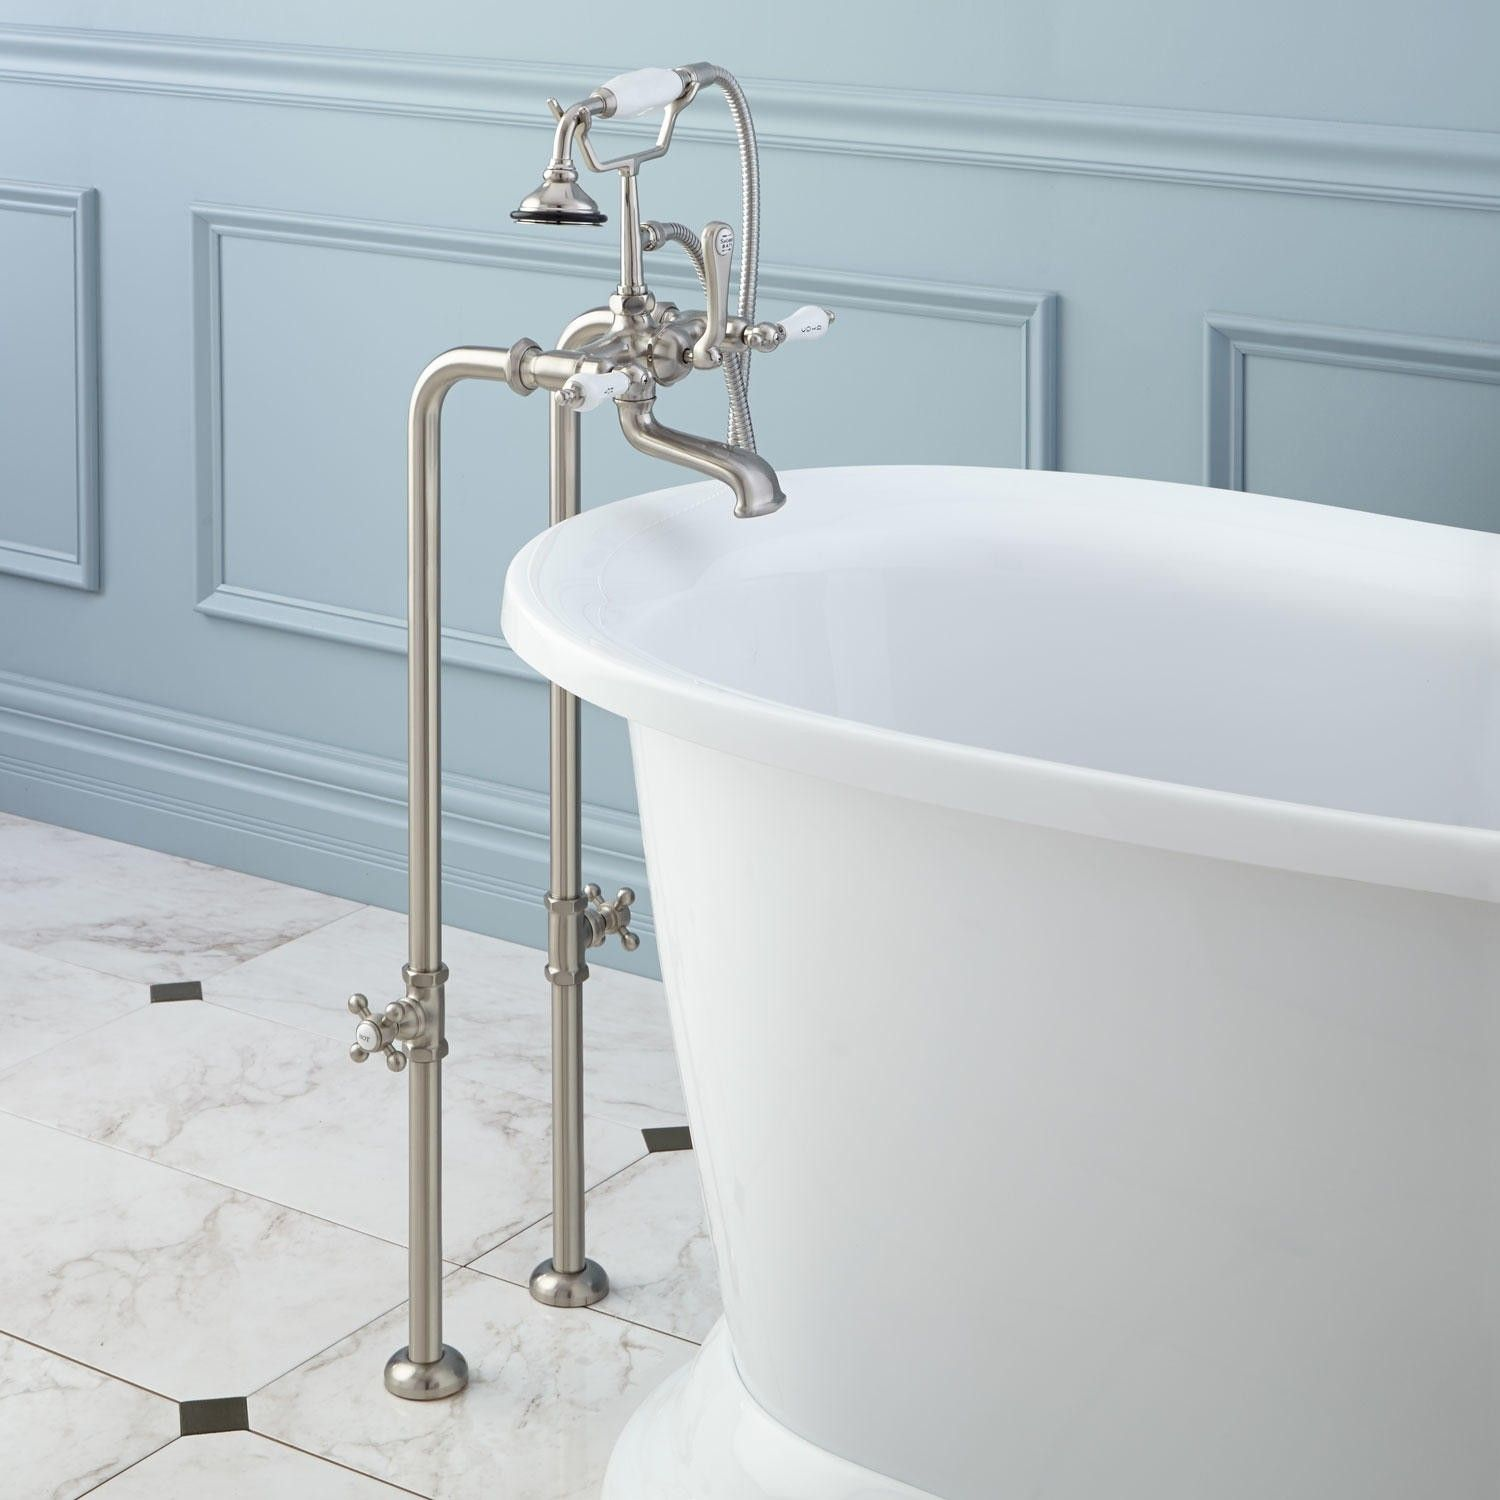 Kohler bathtub drain stopper assembly :: gocontent.ipv.io